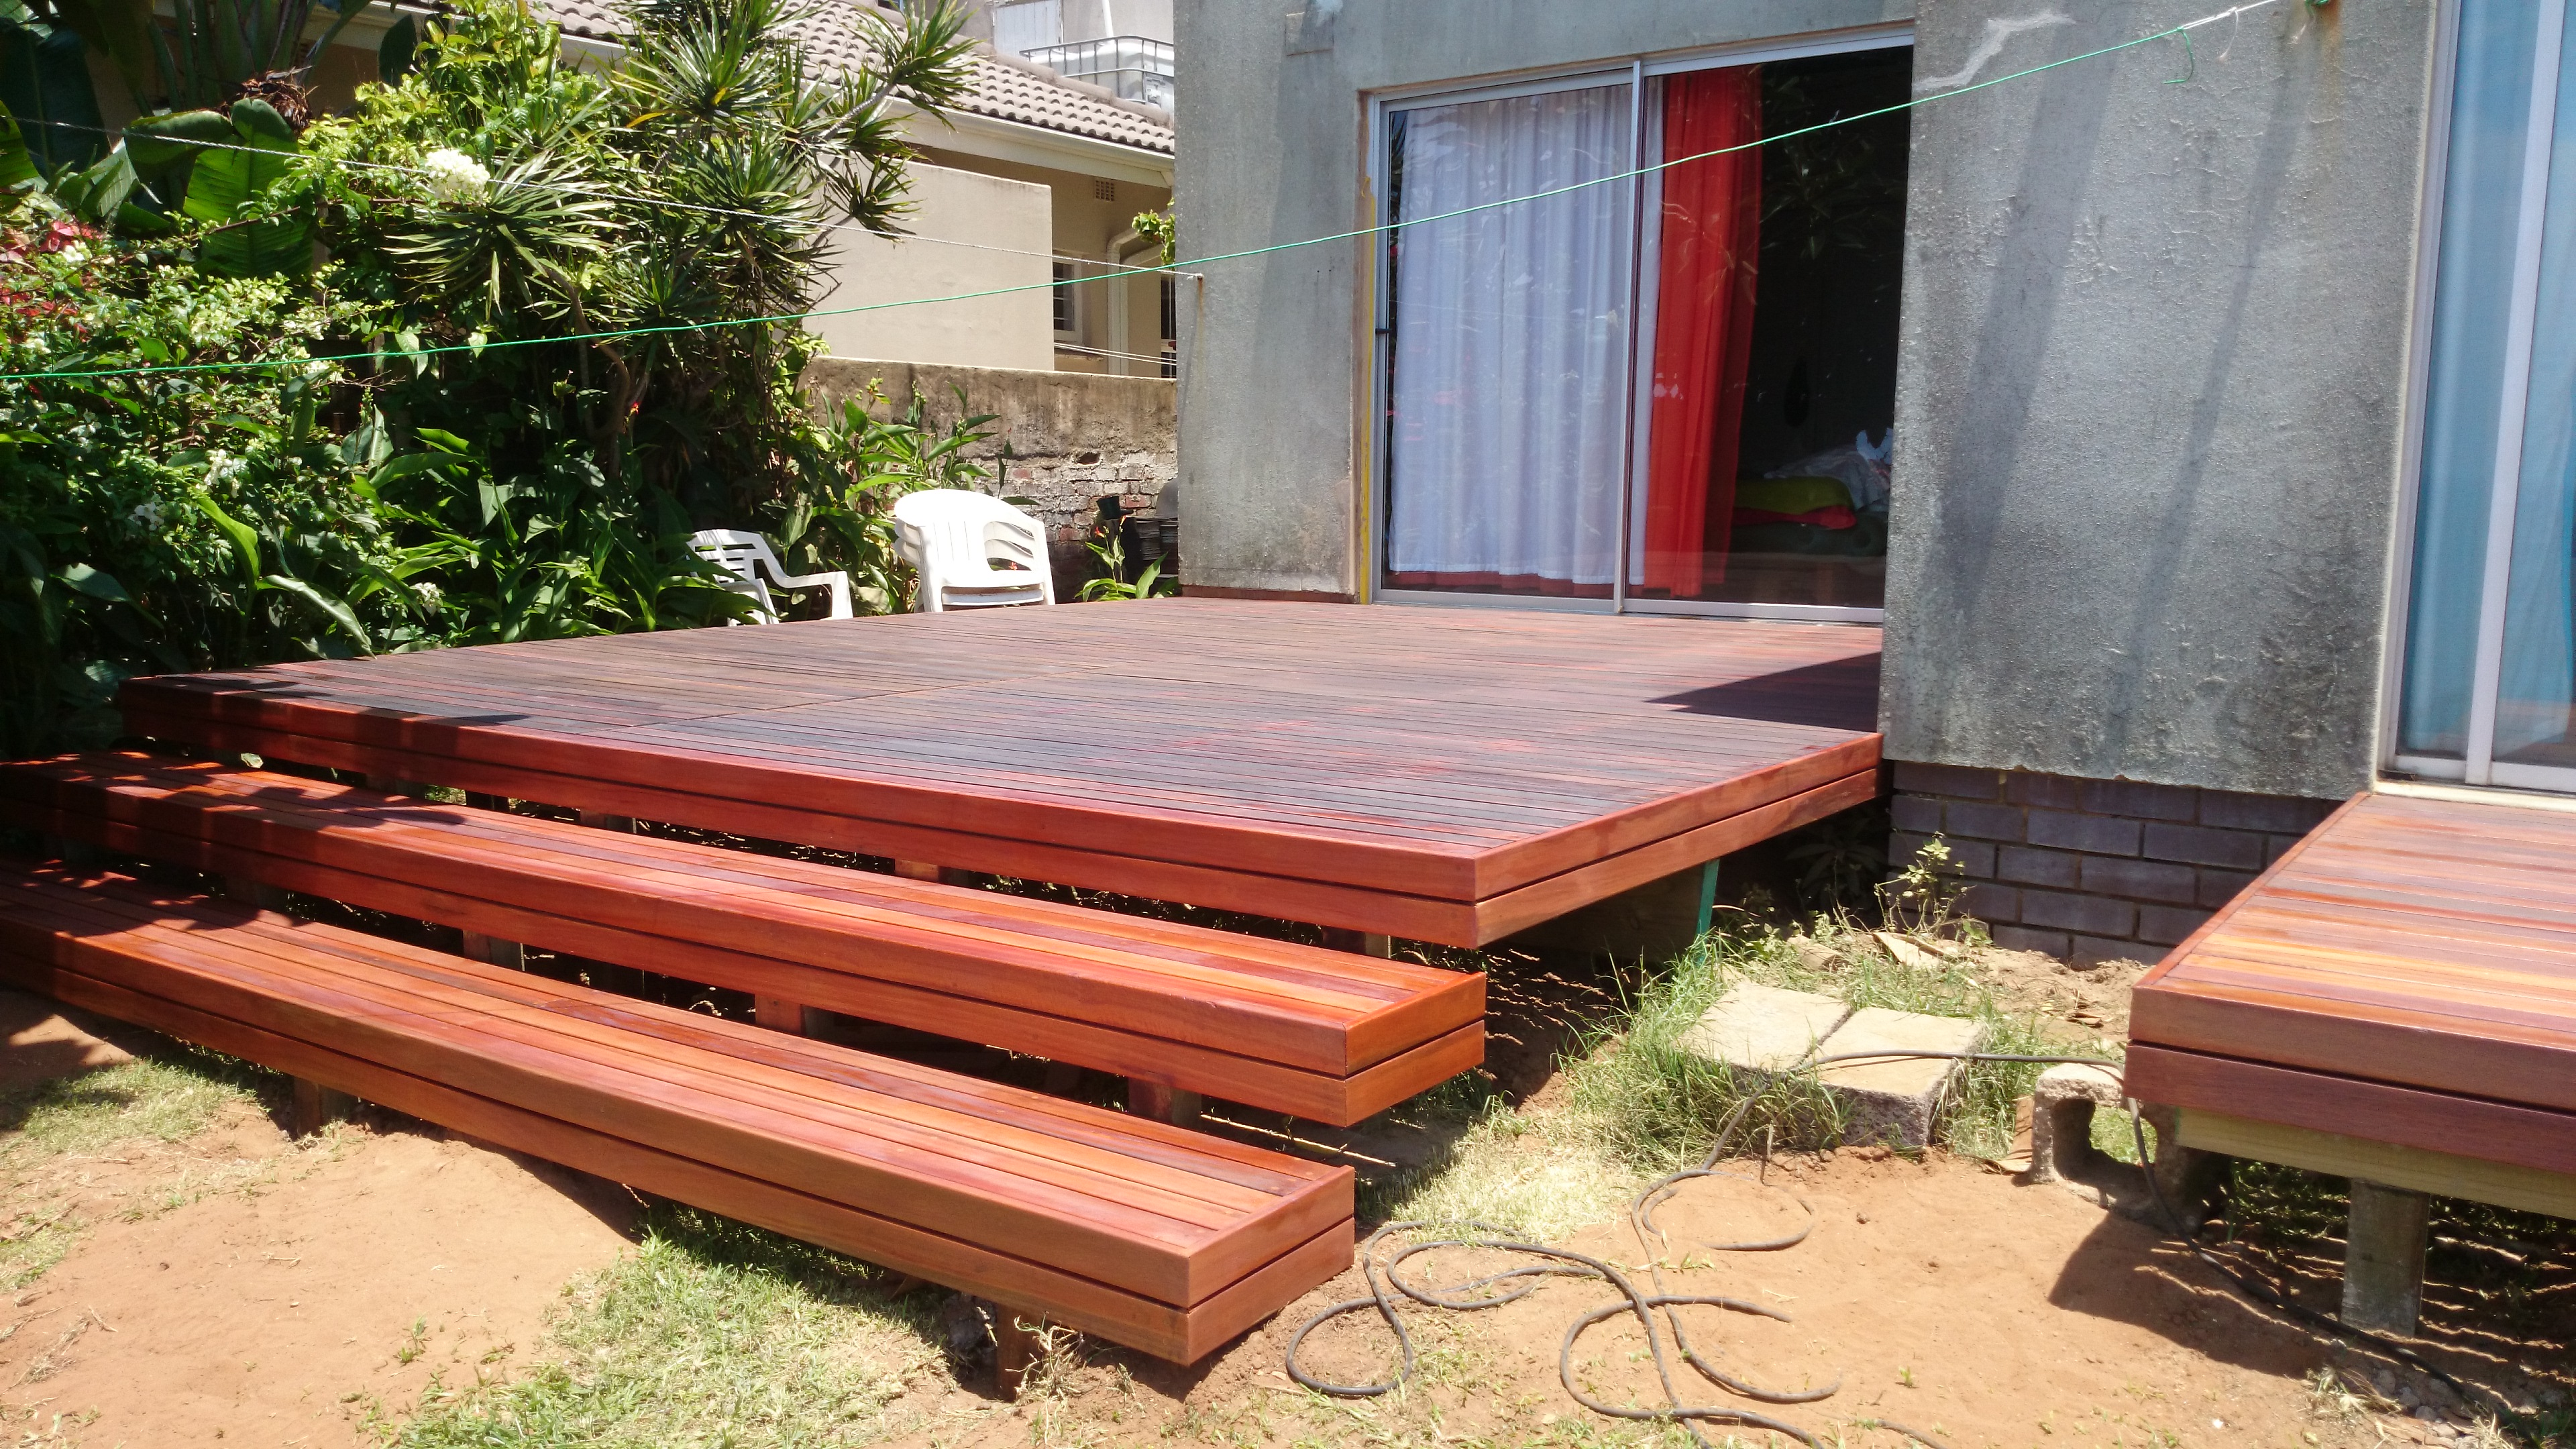 Pictures Of Sundecks Stairs And Benches: Wooden Decks Durban – Bluff